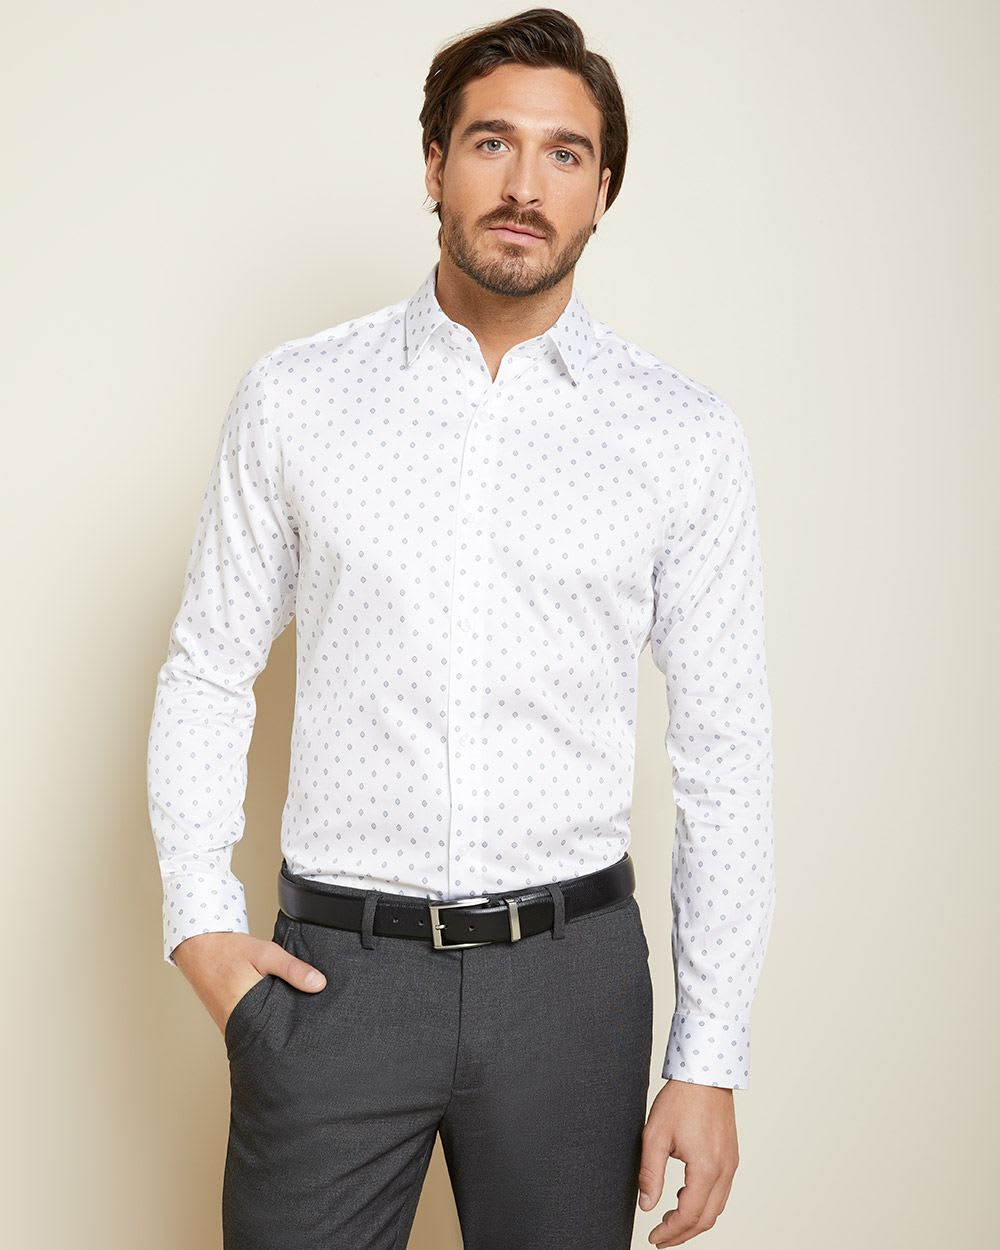 Tailored Fit micro navy medallion dress shirt